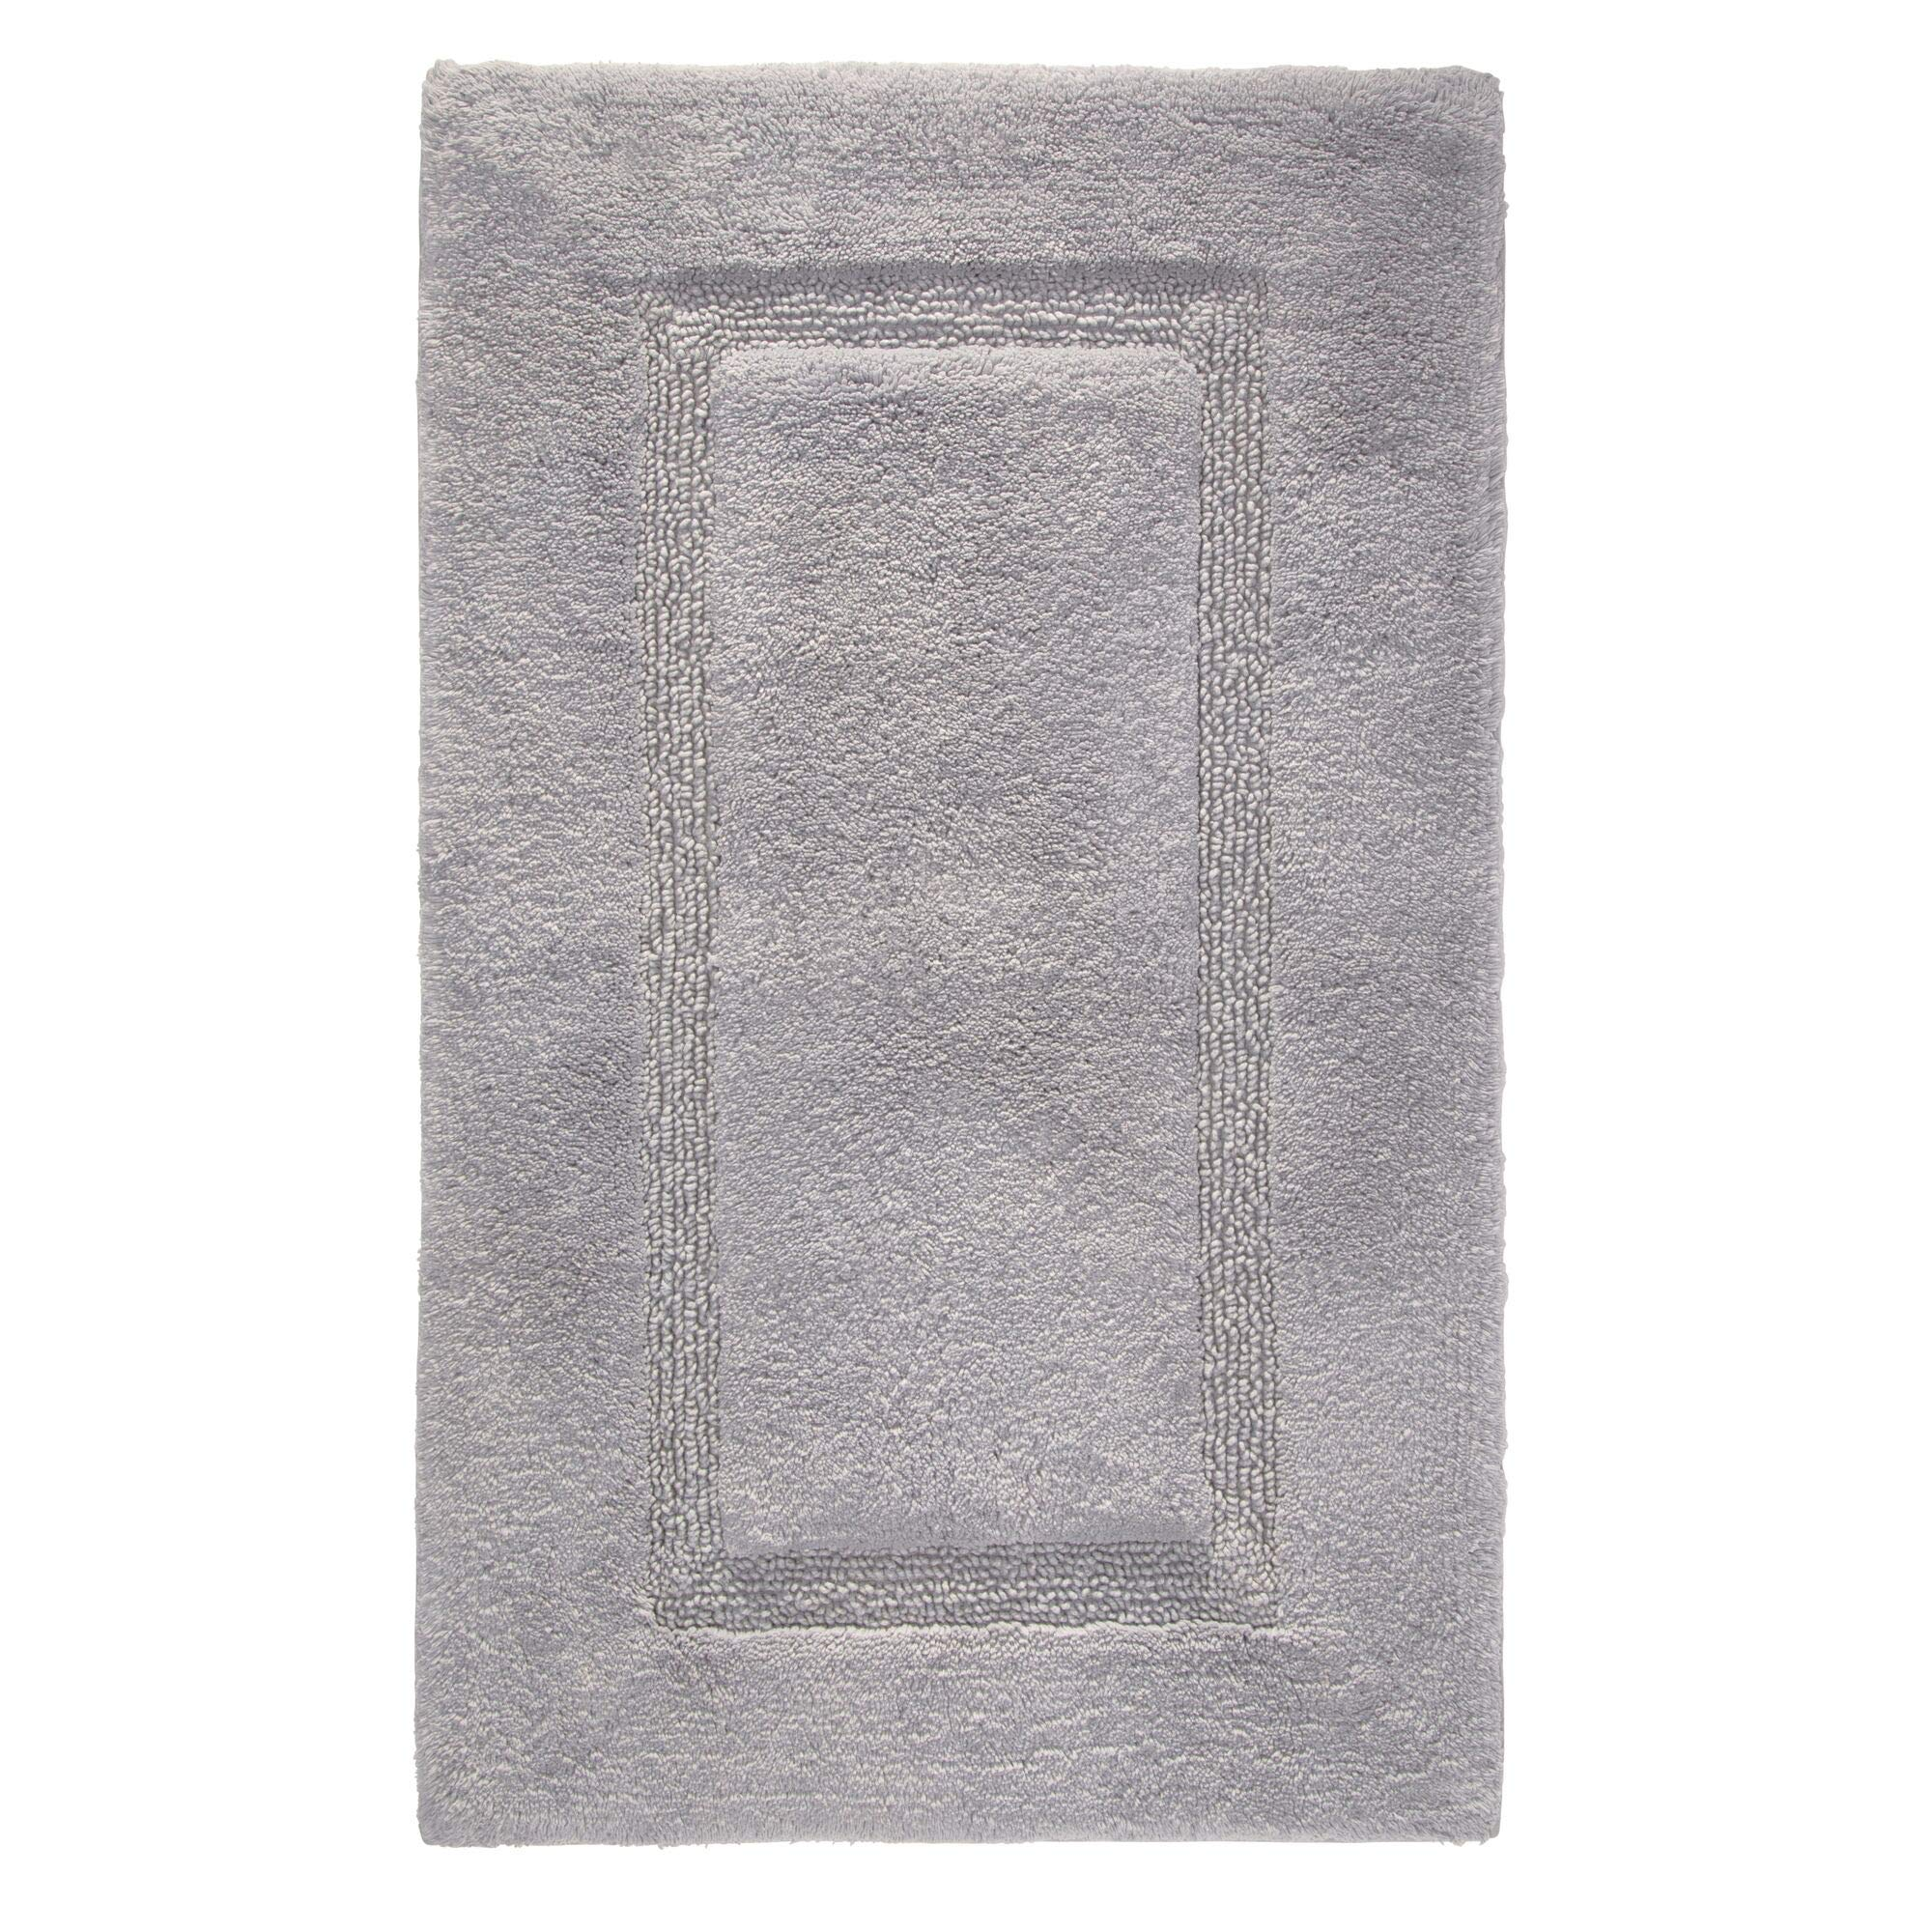 iDesign Spa Plush Cotton Bath Mat, Shower Accent Rug for Master, Guest, and Kids' Bathroom, Gray - 21'' x 34'' by iDesign